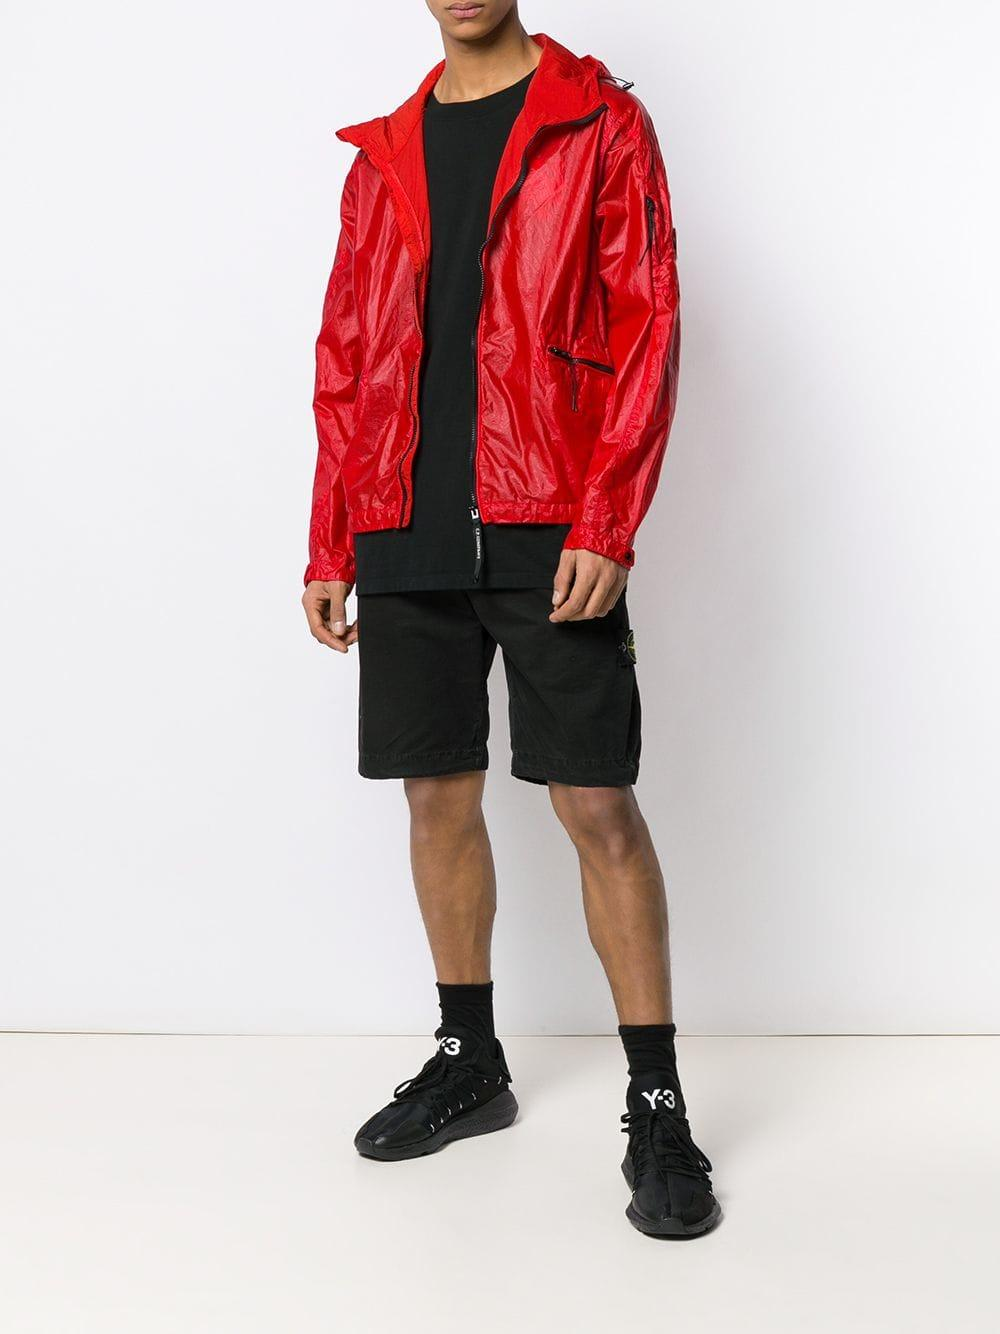 5bb9b2bd0 Lyst - C P Company Zipped-up Bomber Jacket in Red for Men